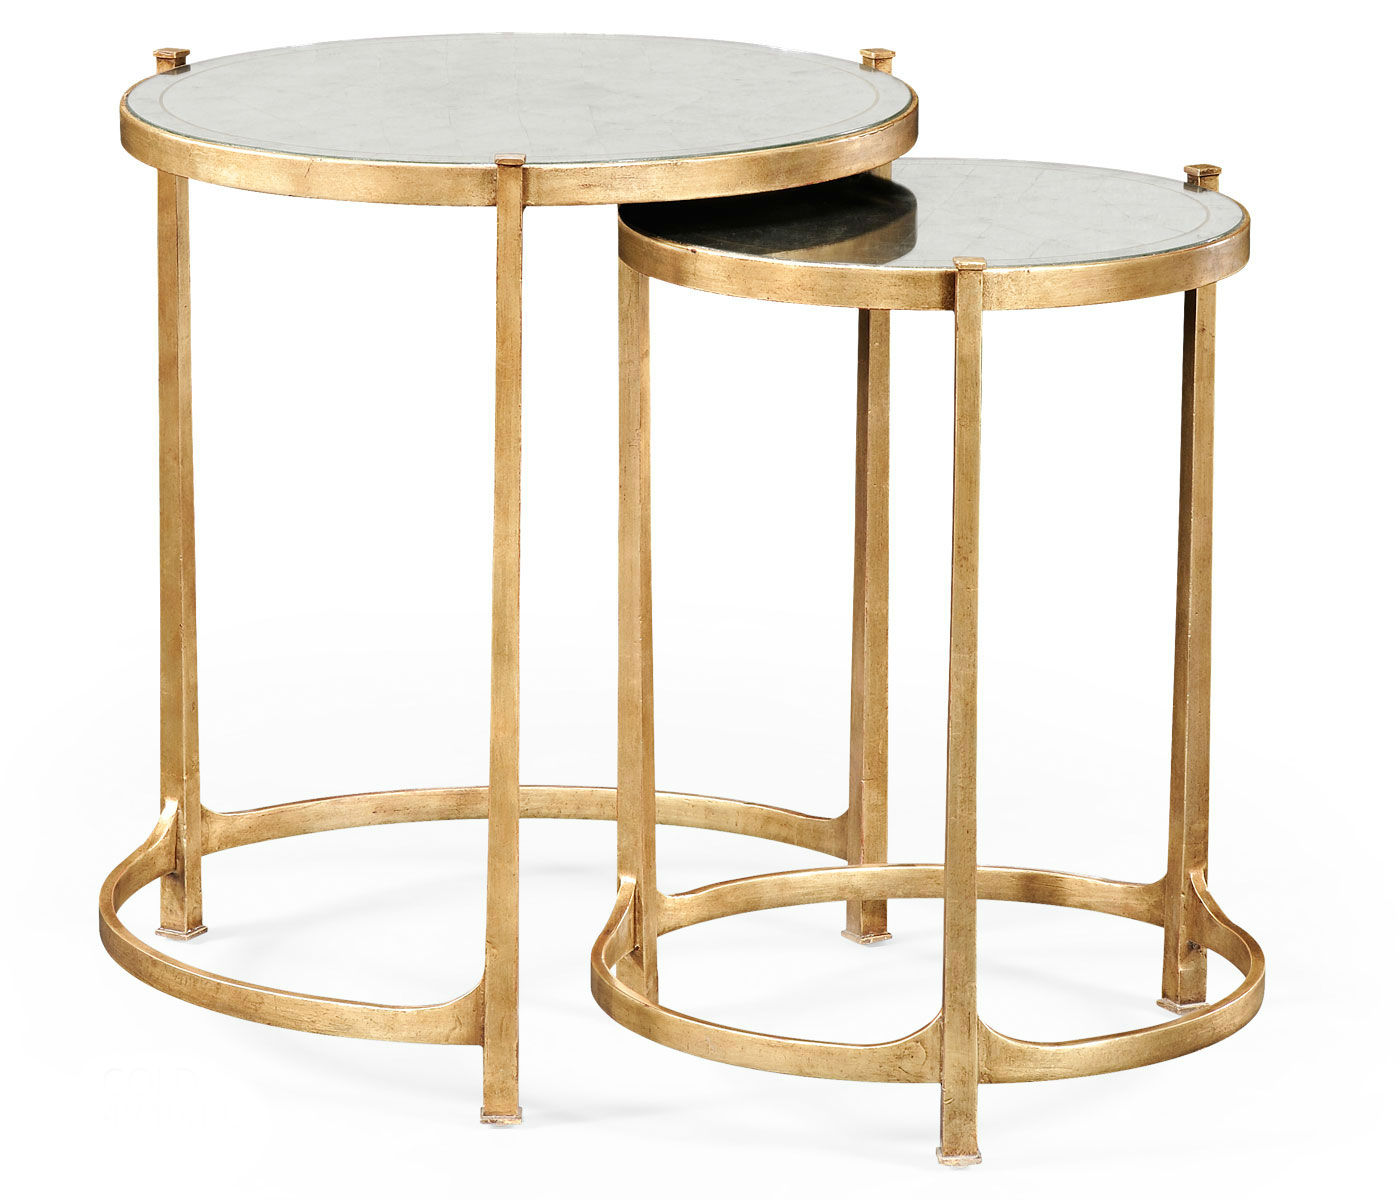 delectable target accent end tables white for bench and storage table decorative gold round antique living room modern tall furniture glass kijiji threshold outdoor cabinet full